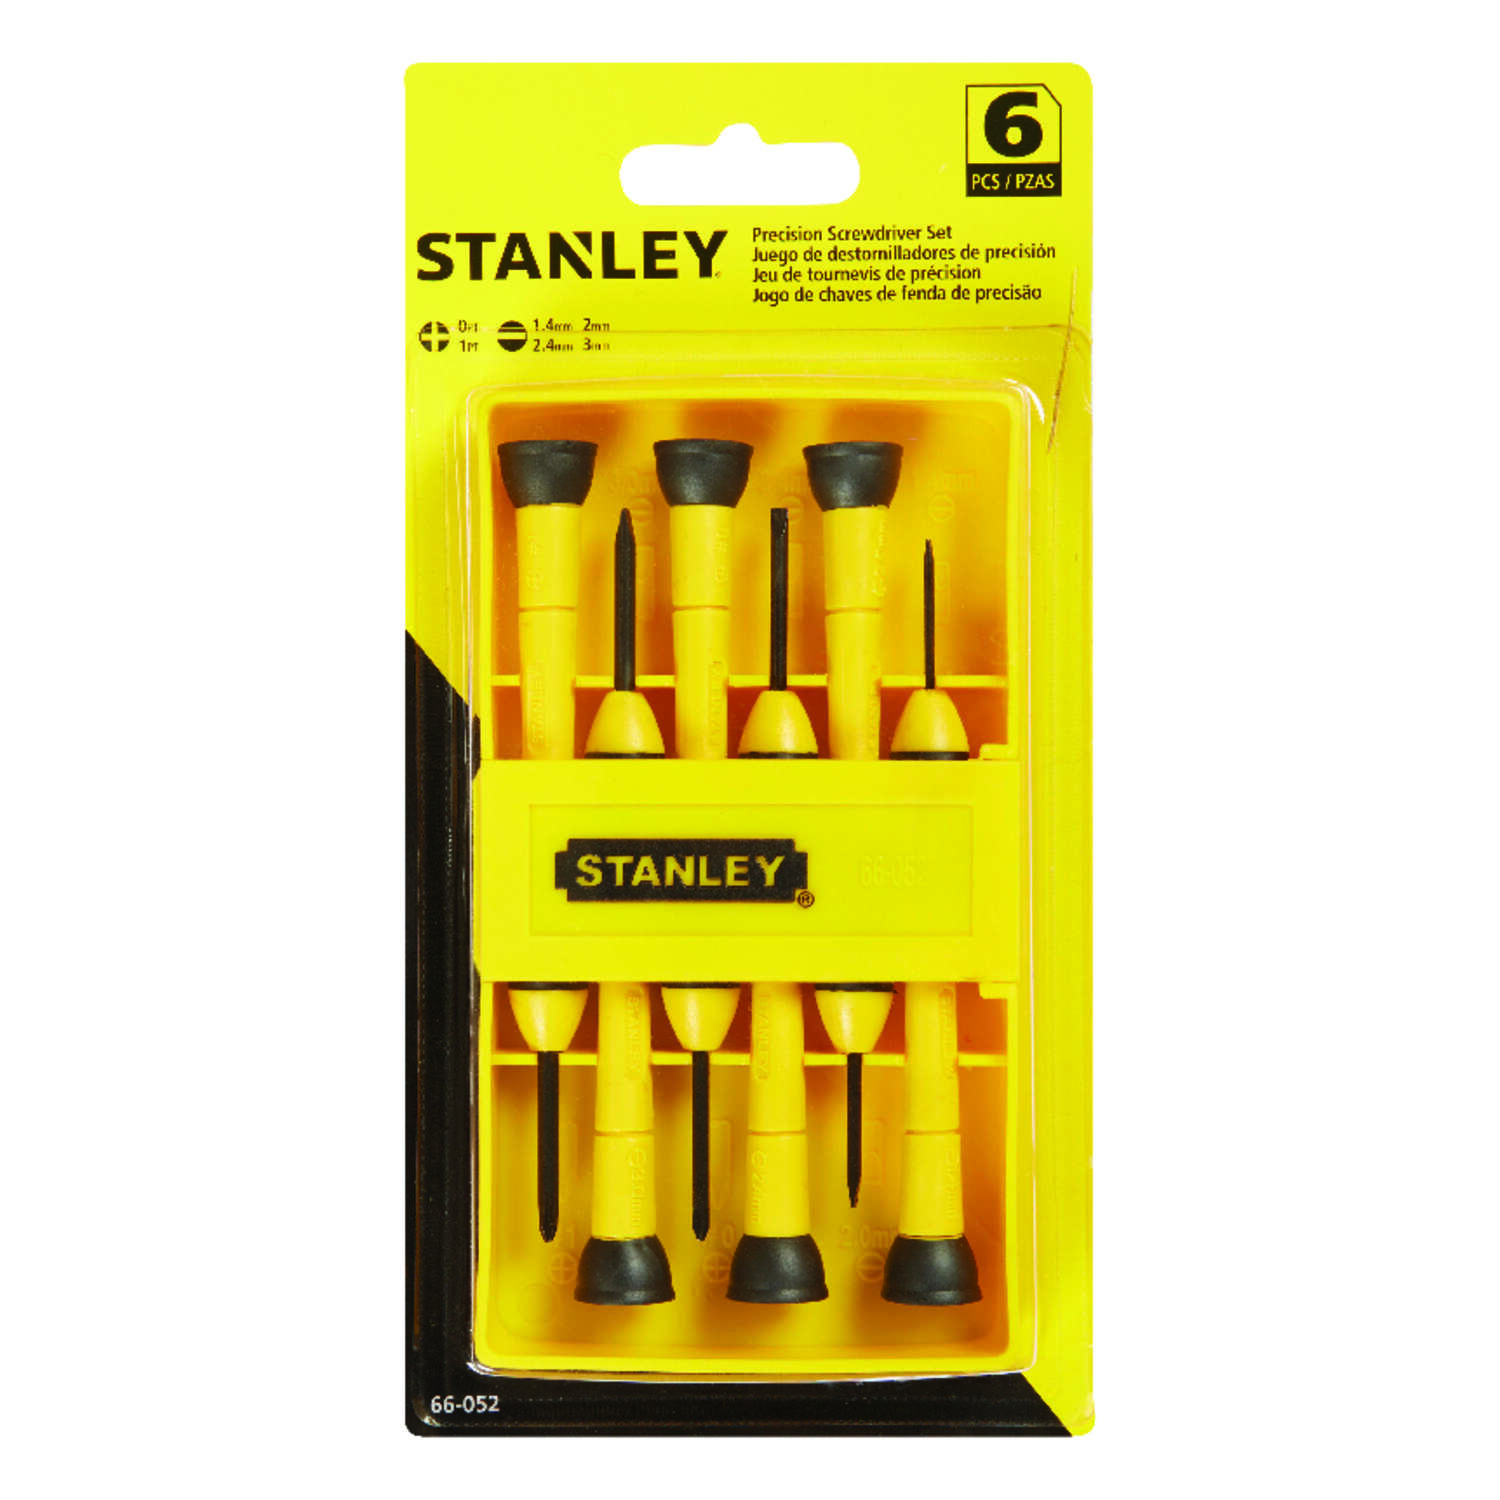 Stanley  6 pc. Precision Screwdriver Set  Assorted in. Alloy Steel